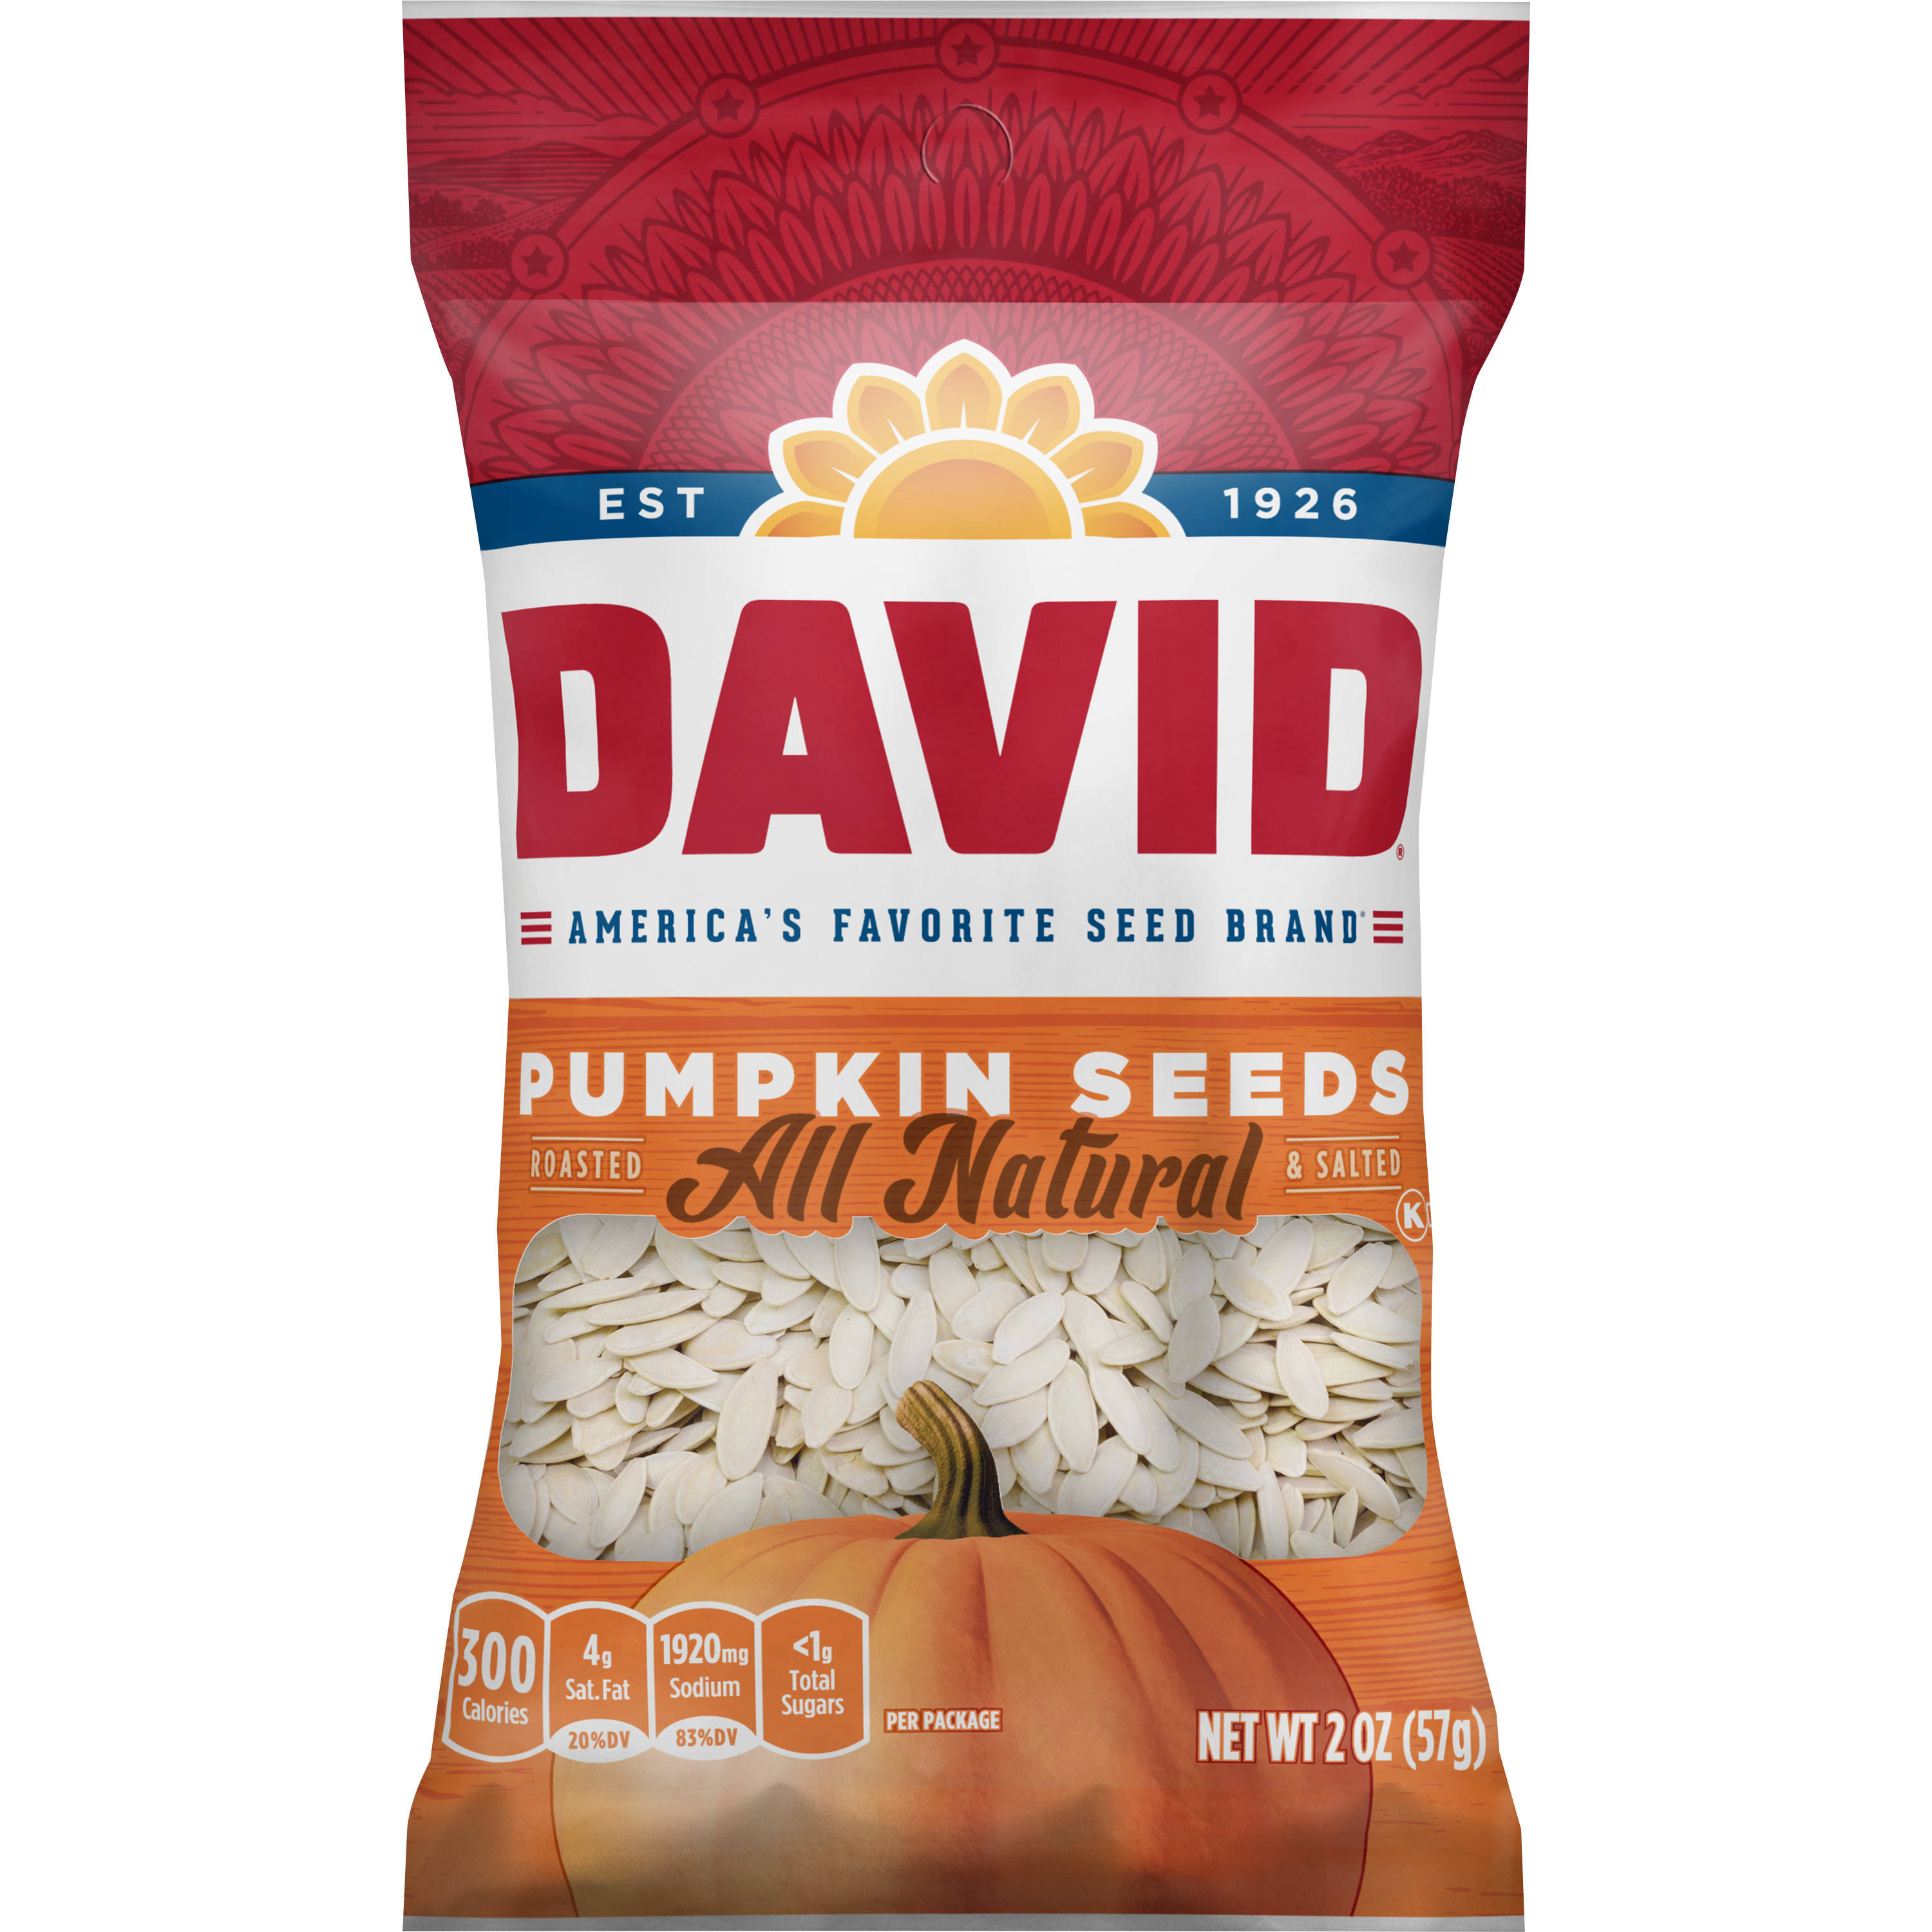 David Roasted and Salted Pumpkin Seeds, 2.25 oz